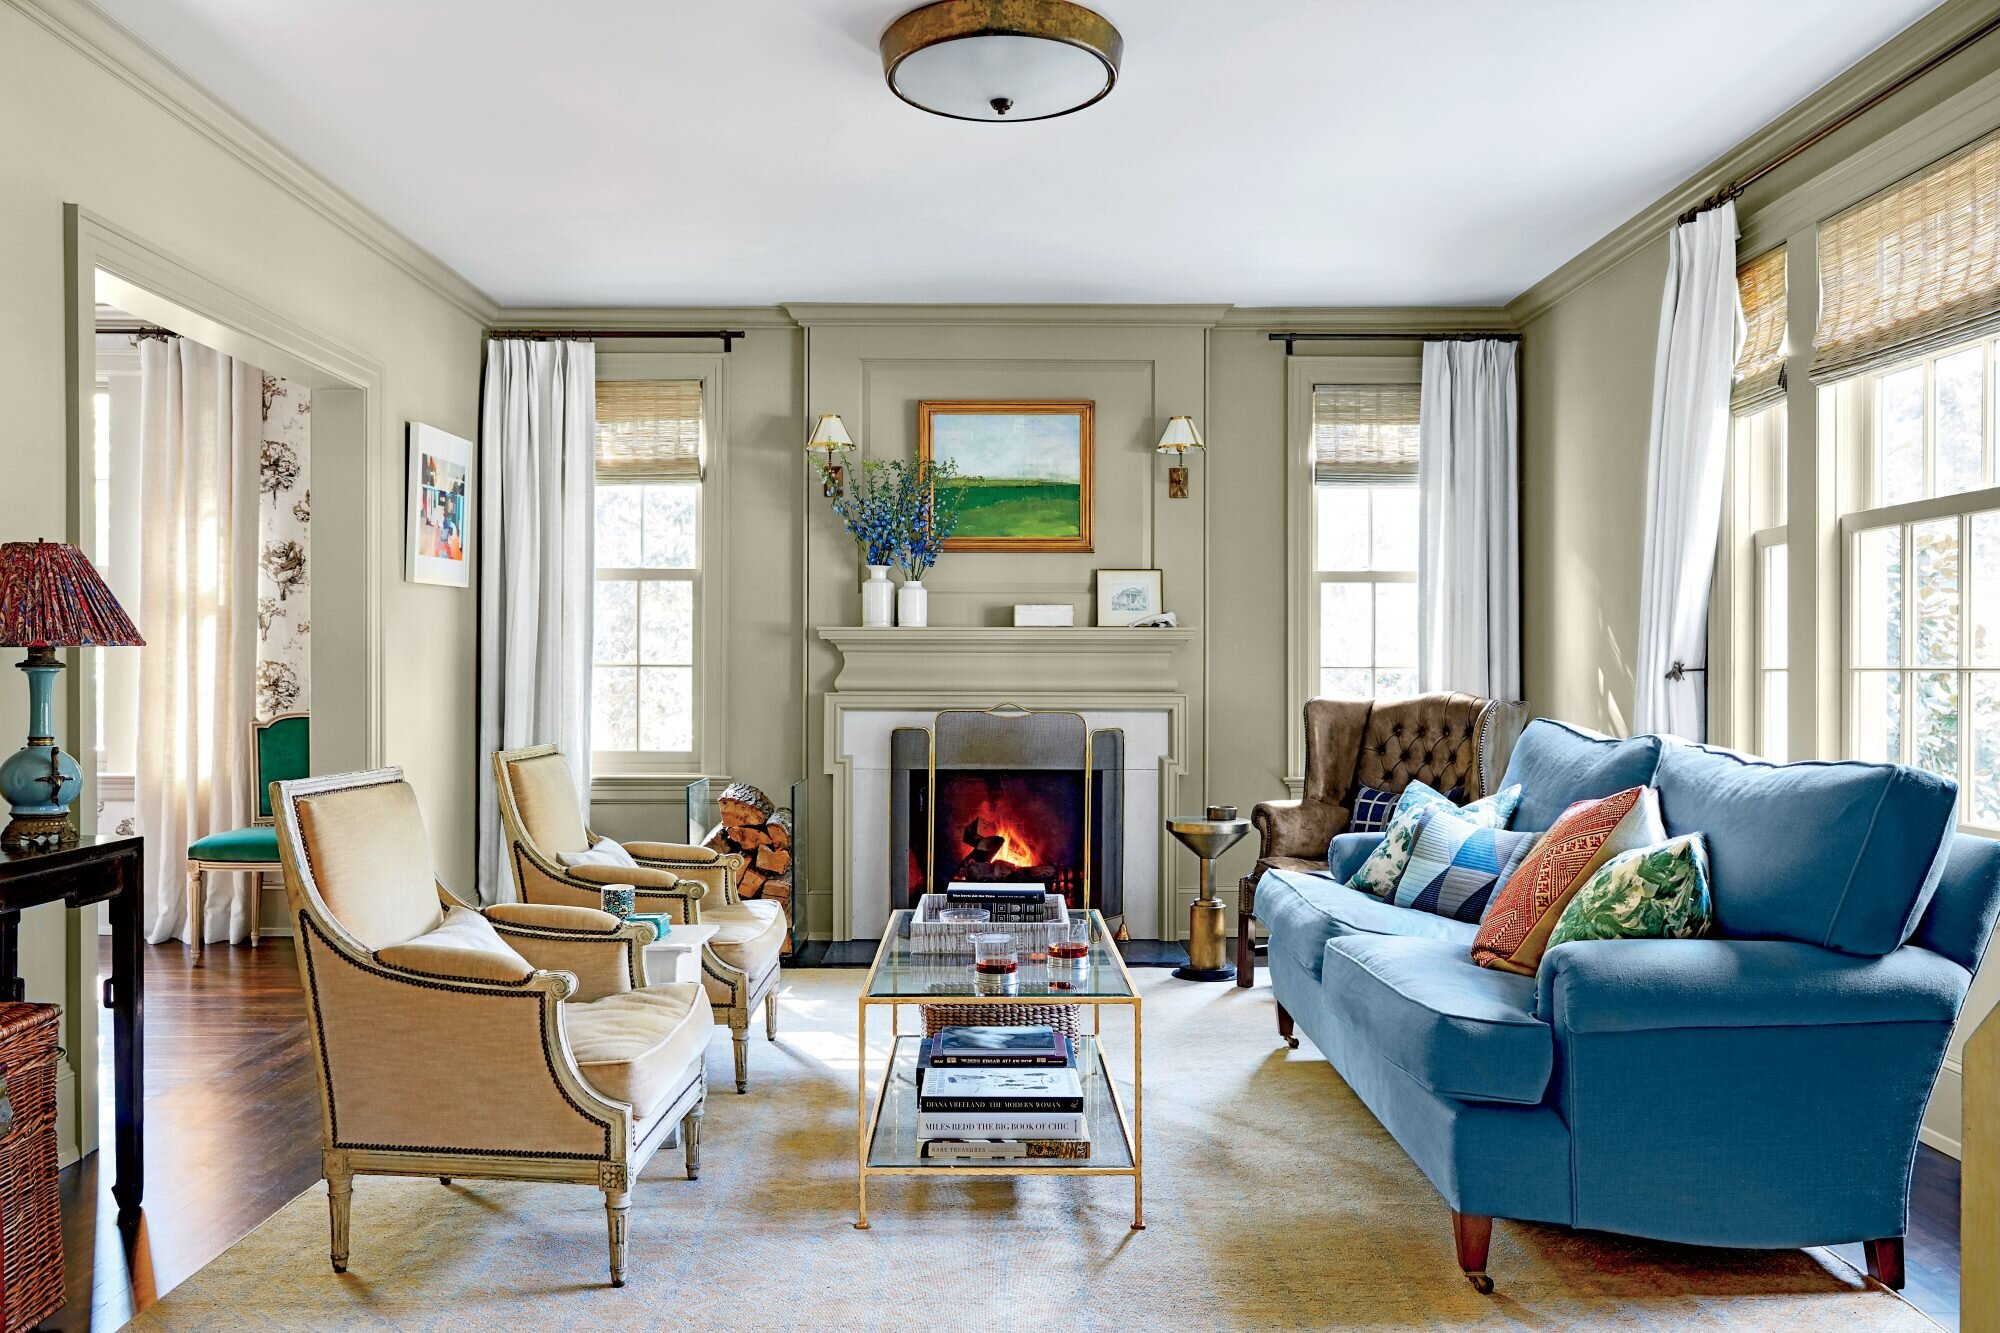 Prepare To Fall In Love With This 1930s Colonial Home Remodel Southern Living